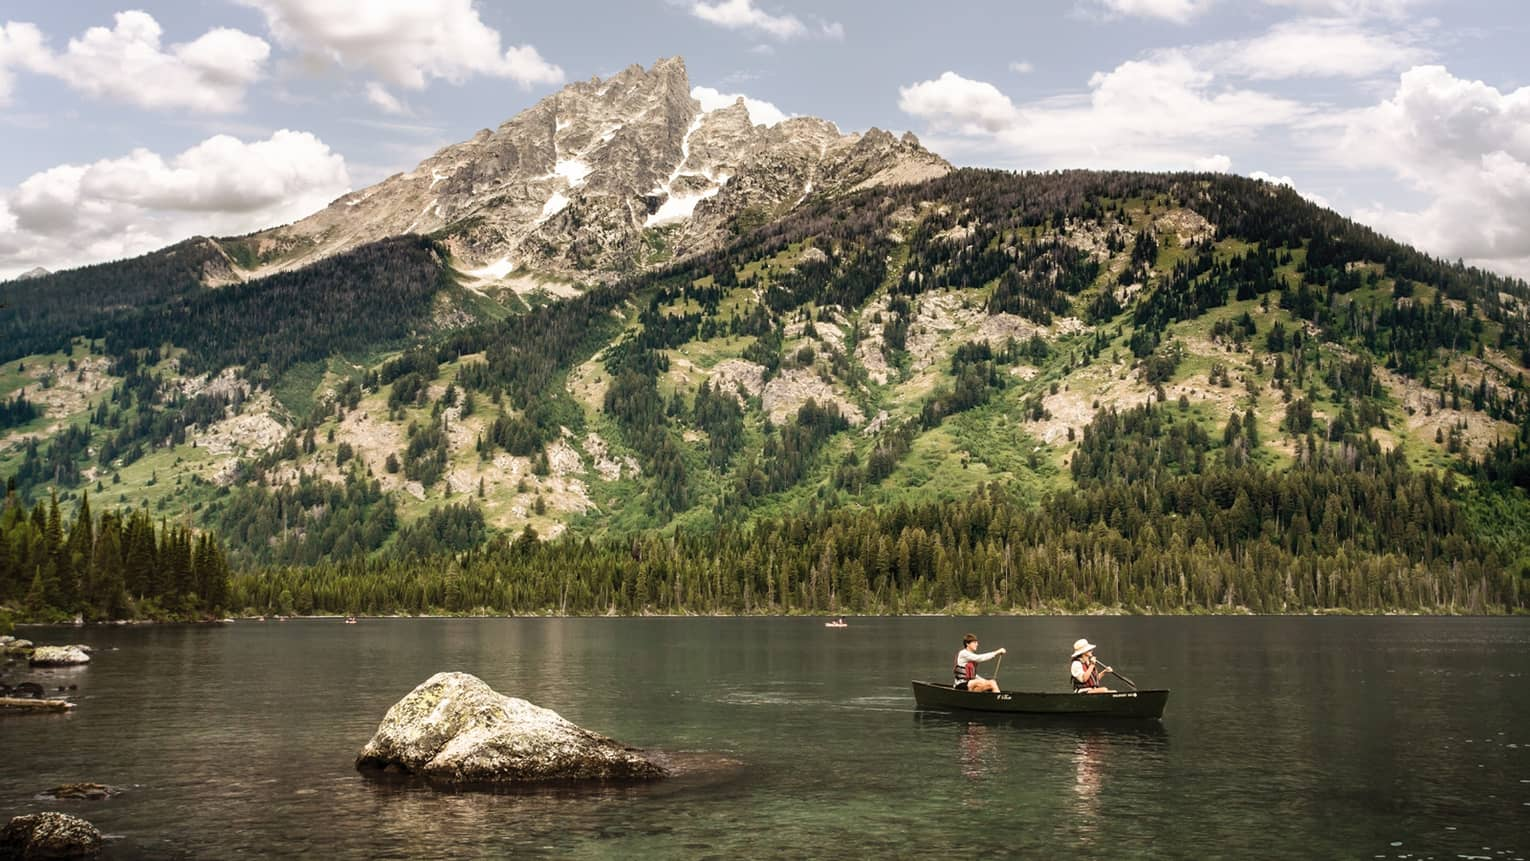 Two people in canoe on lake below towering mountains on sunny day